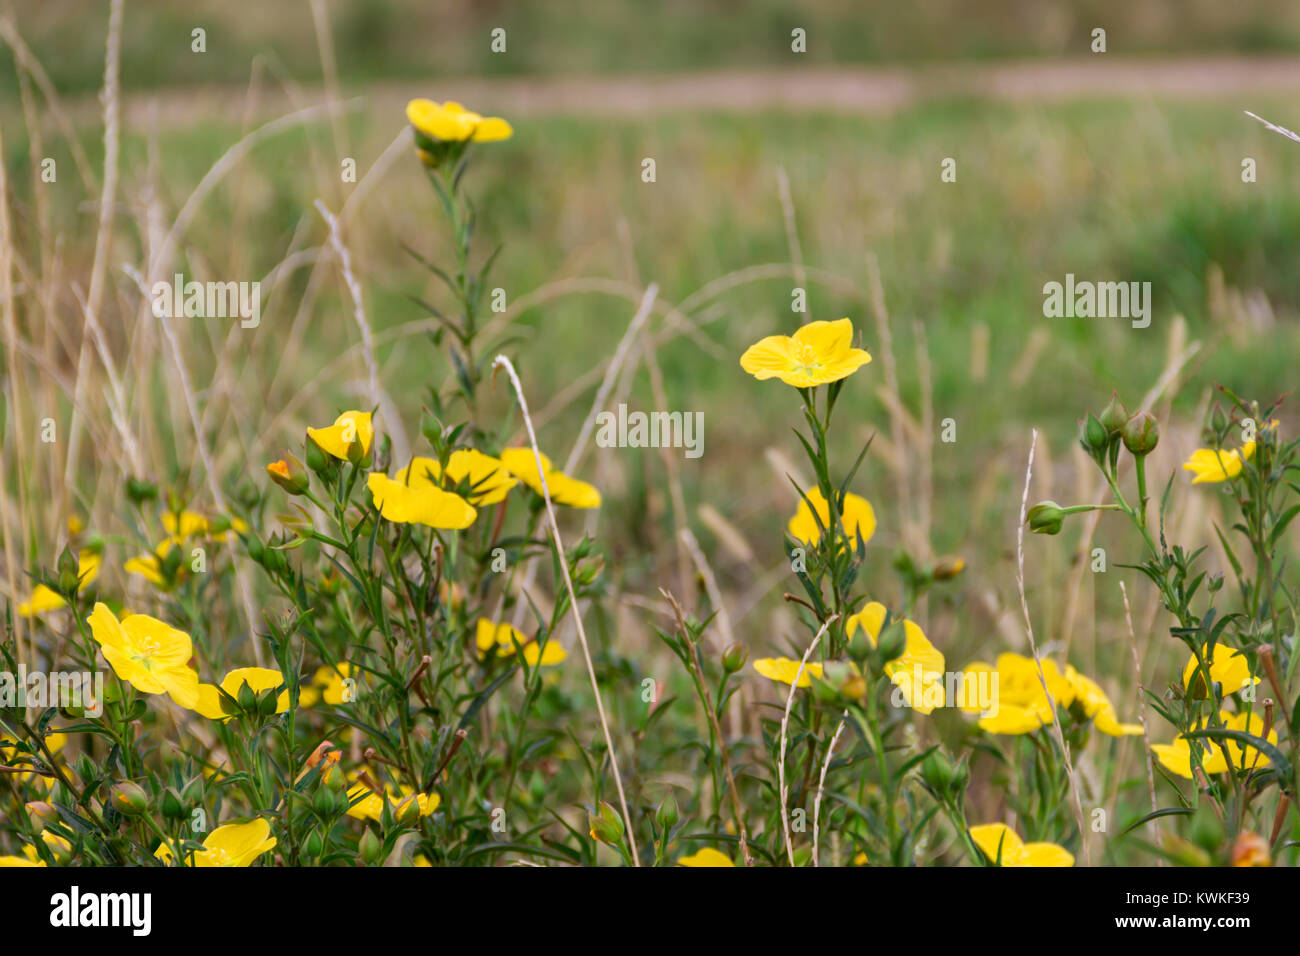 Wild Yellow Flowers Bloom In Spring On The Green Grass Of The Field